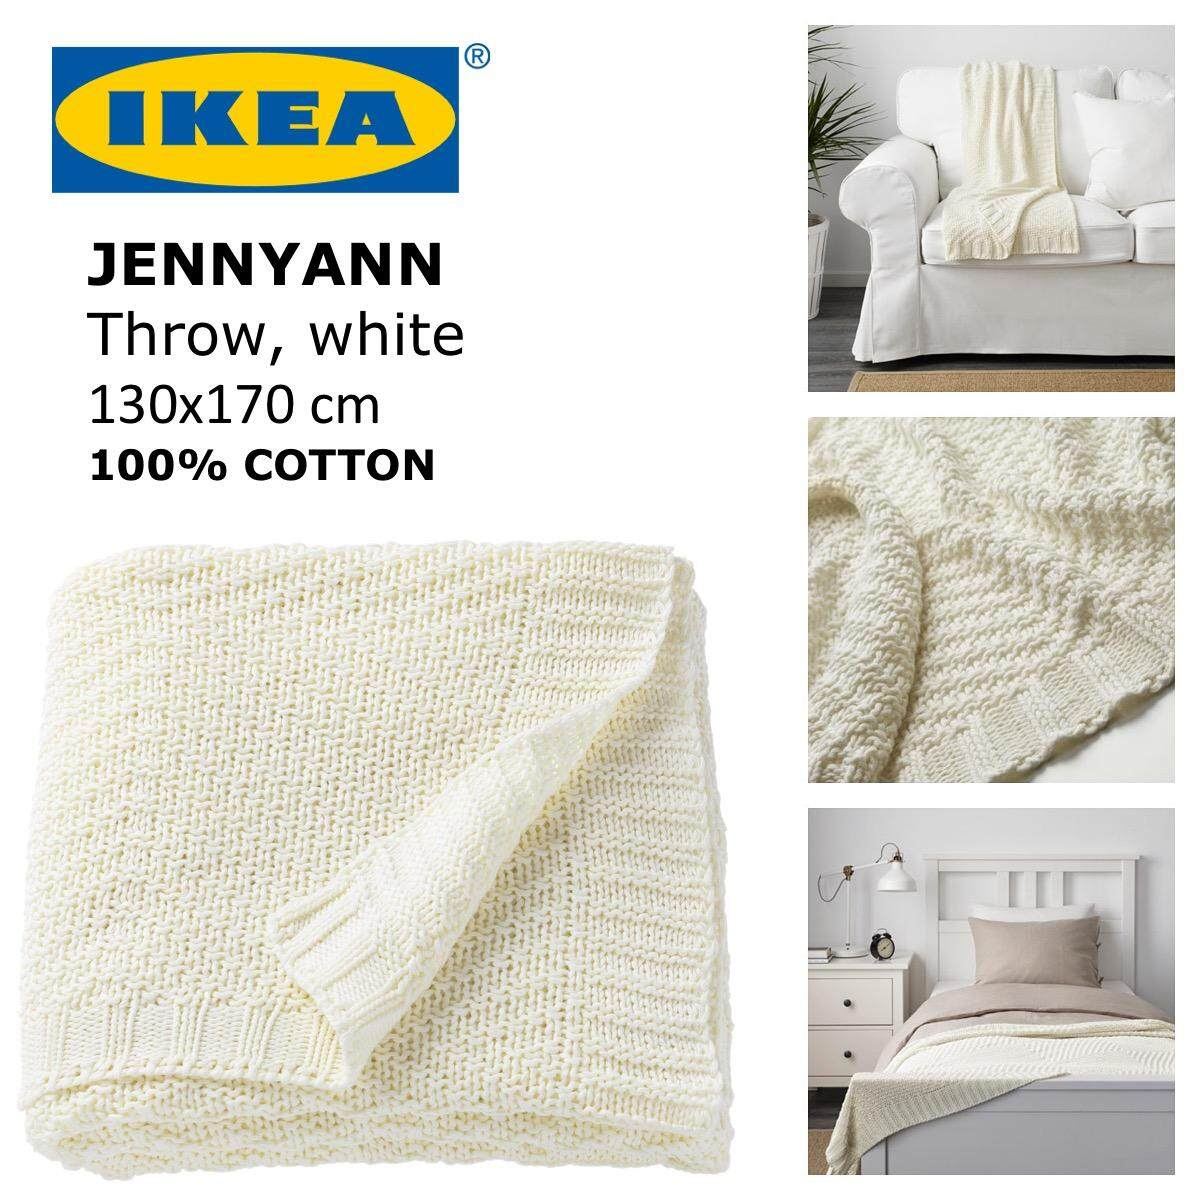 7a22077e4e43 IKEA JENNYANN White Knitted Soft Light Airy 100% Cotton Blanket Throw